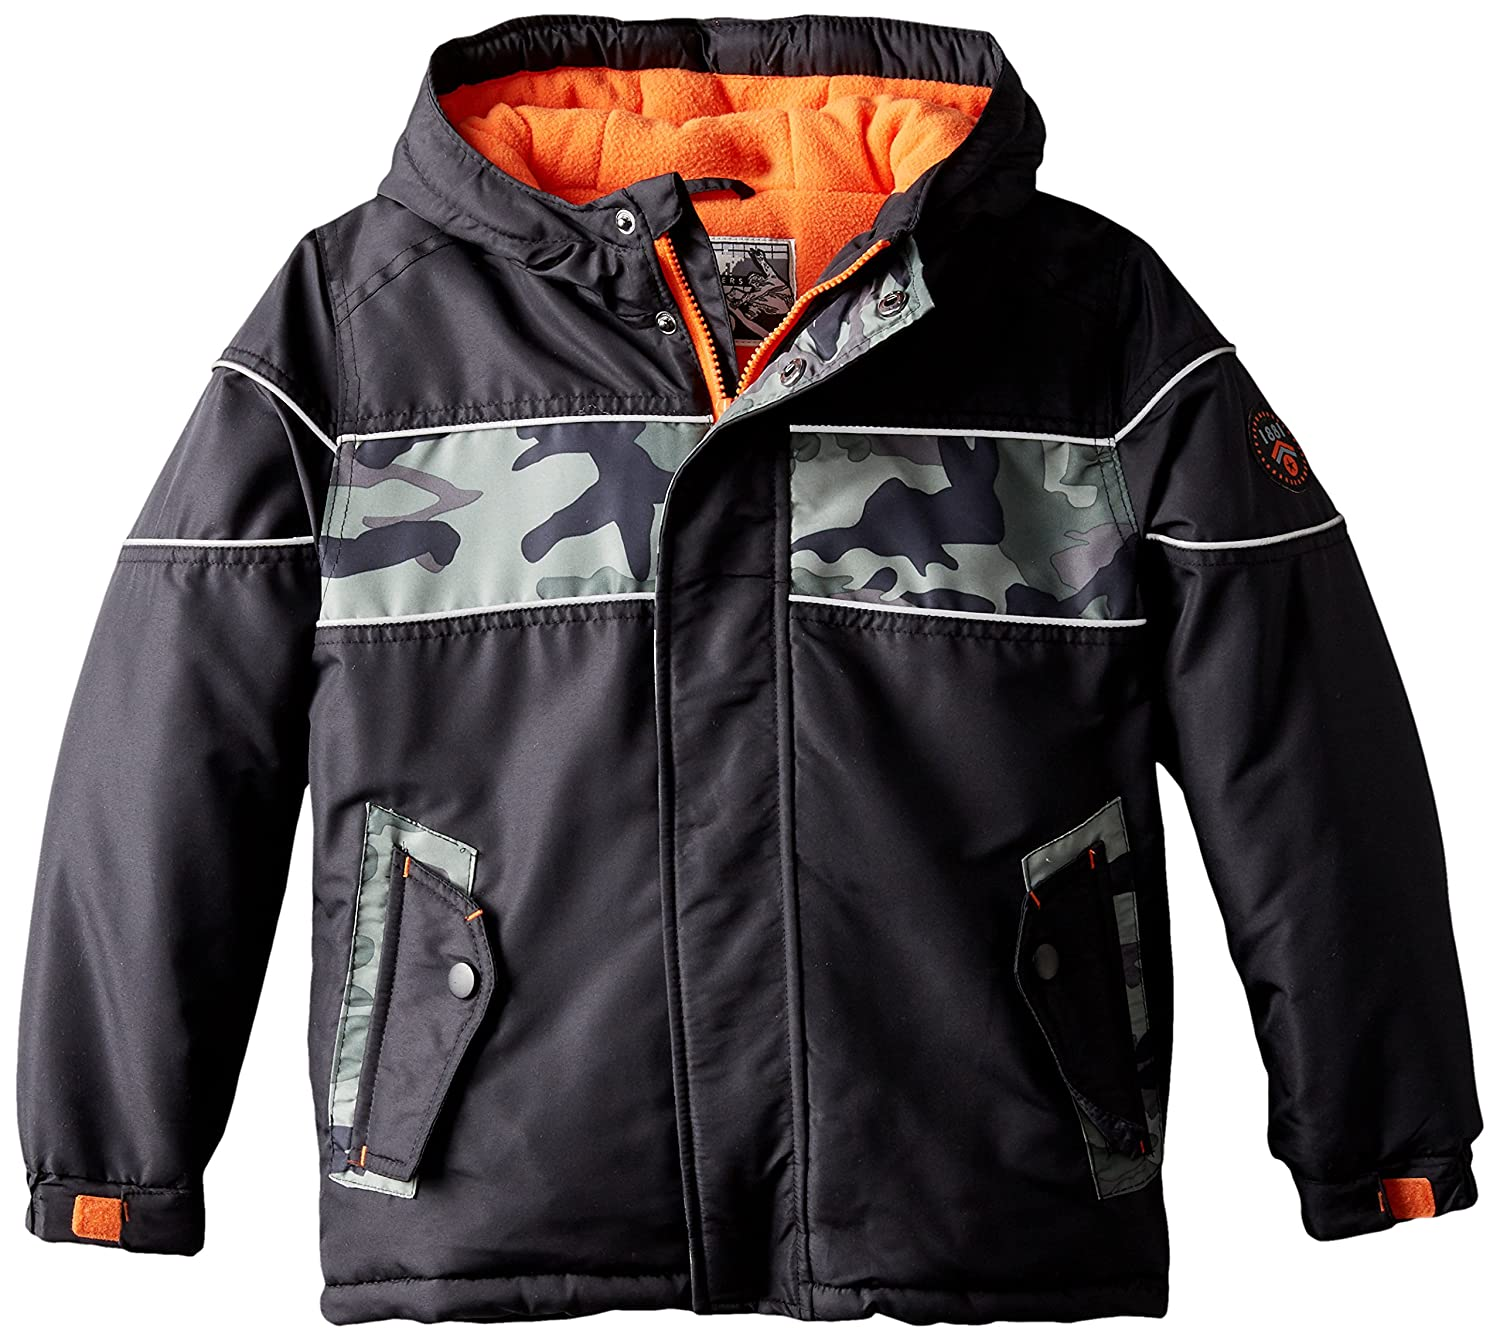 Rothschild Little Boys' Puffer Coat with Printed Stripe 45344